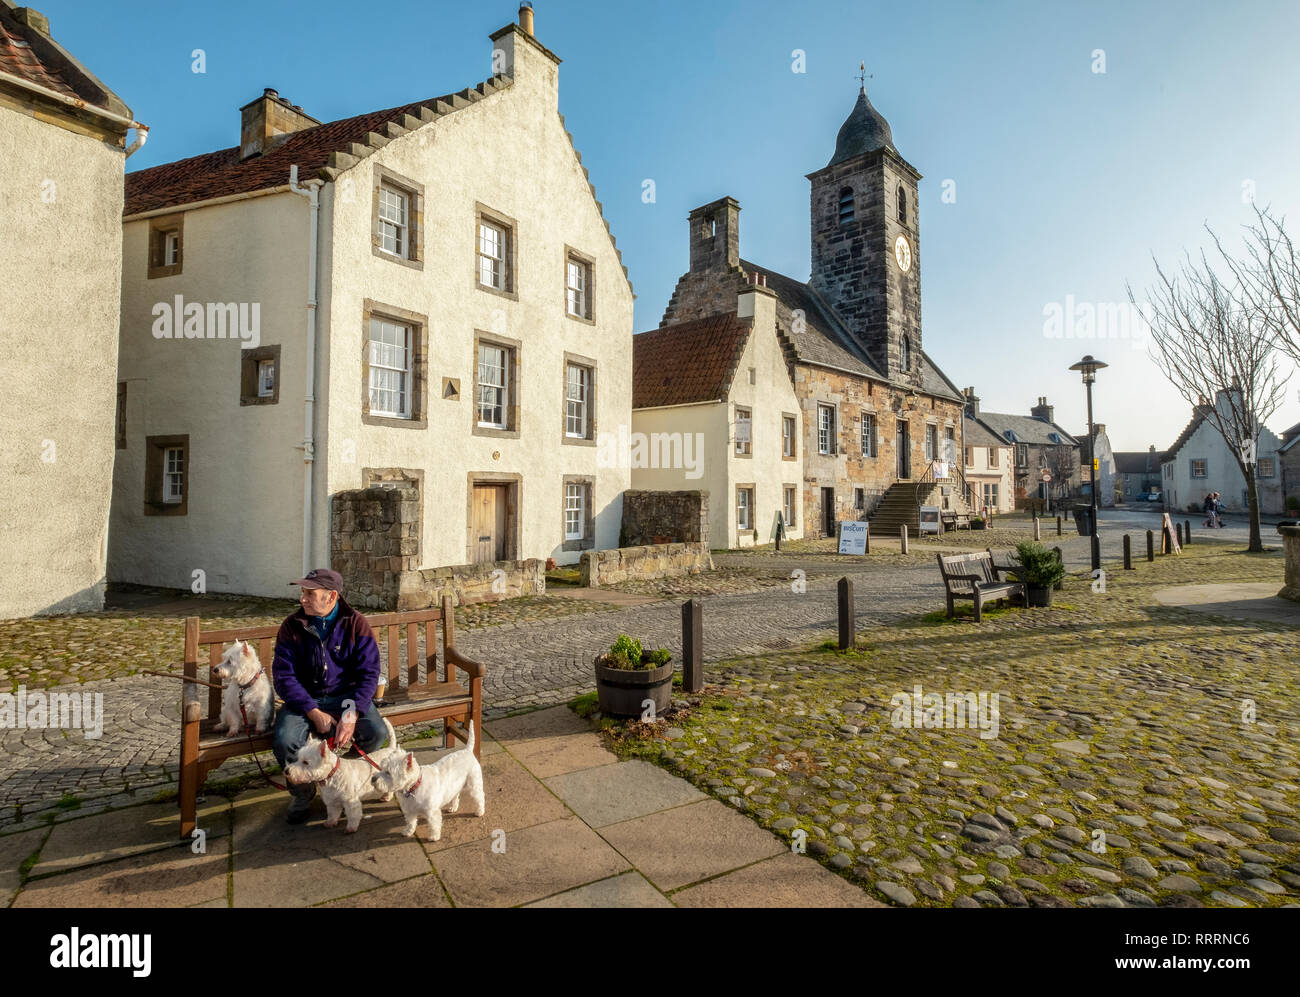 A man with three West Highland Terriers sitting on a bench in the historic village of Culross, Fife, Scotland. - Stock Image